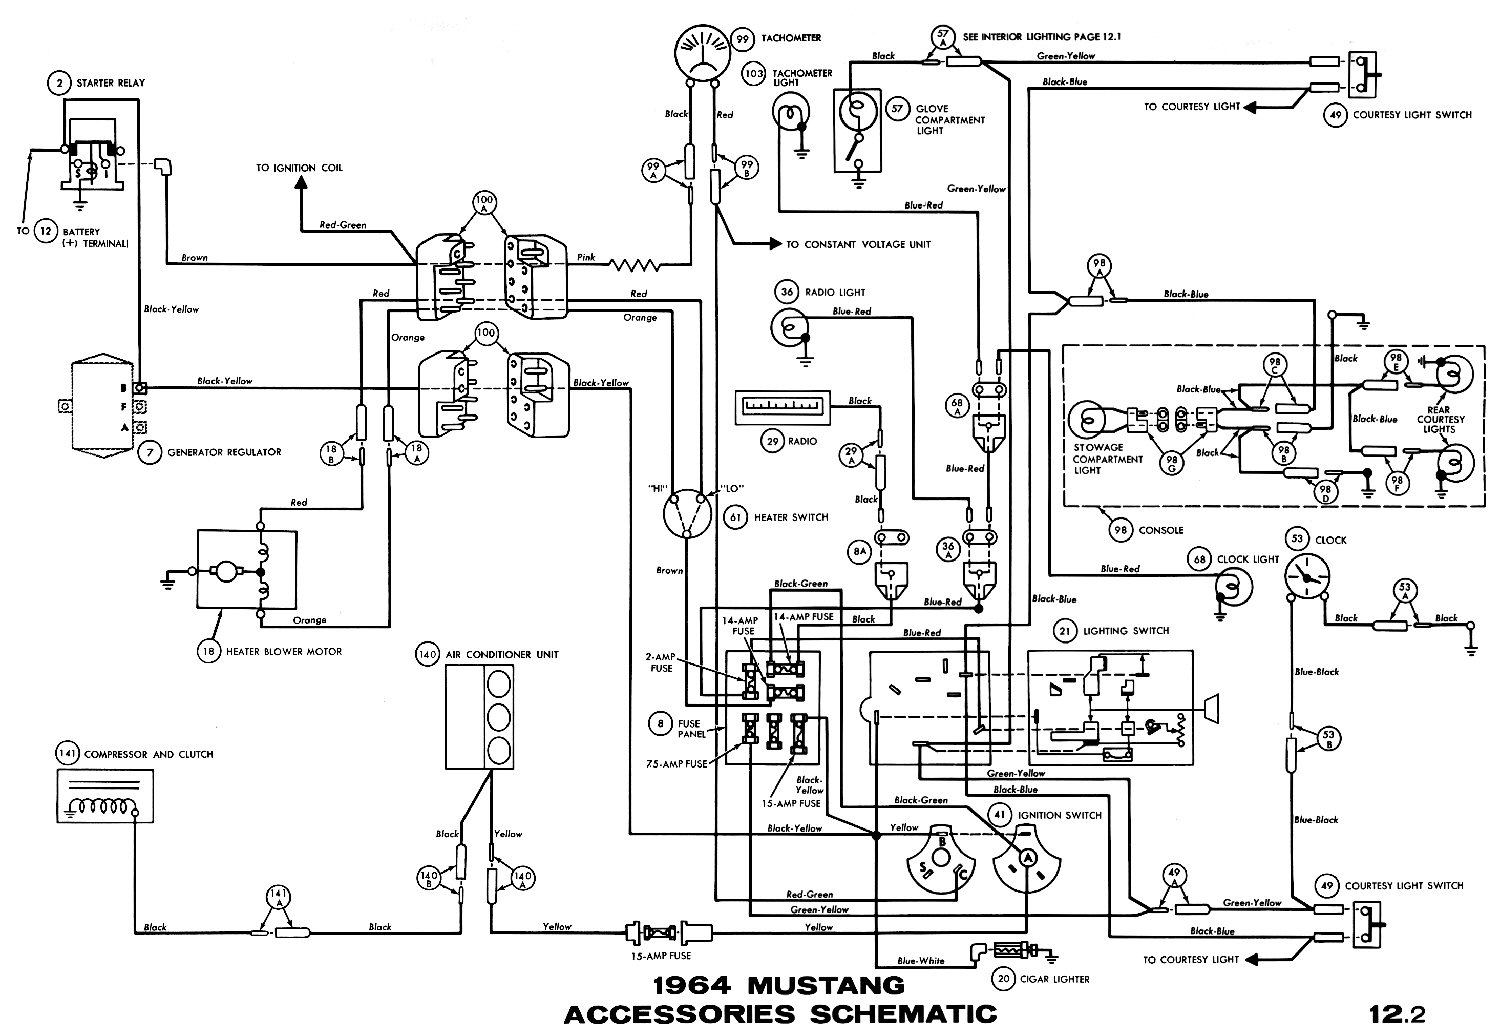 1964m 2015 mustang wiring diagram schematic mustang 2015 \u2022 free wiring 1969 ford mustang ignition wiring diagram at n-0.co